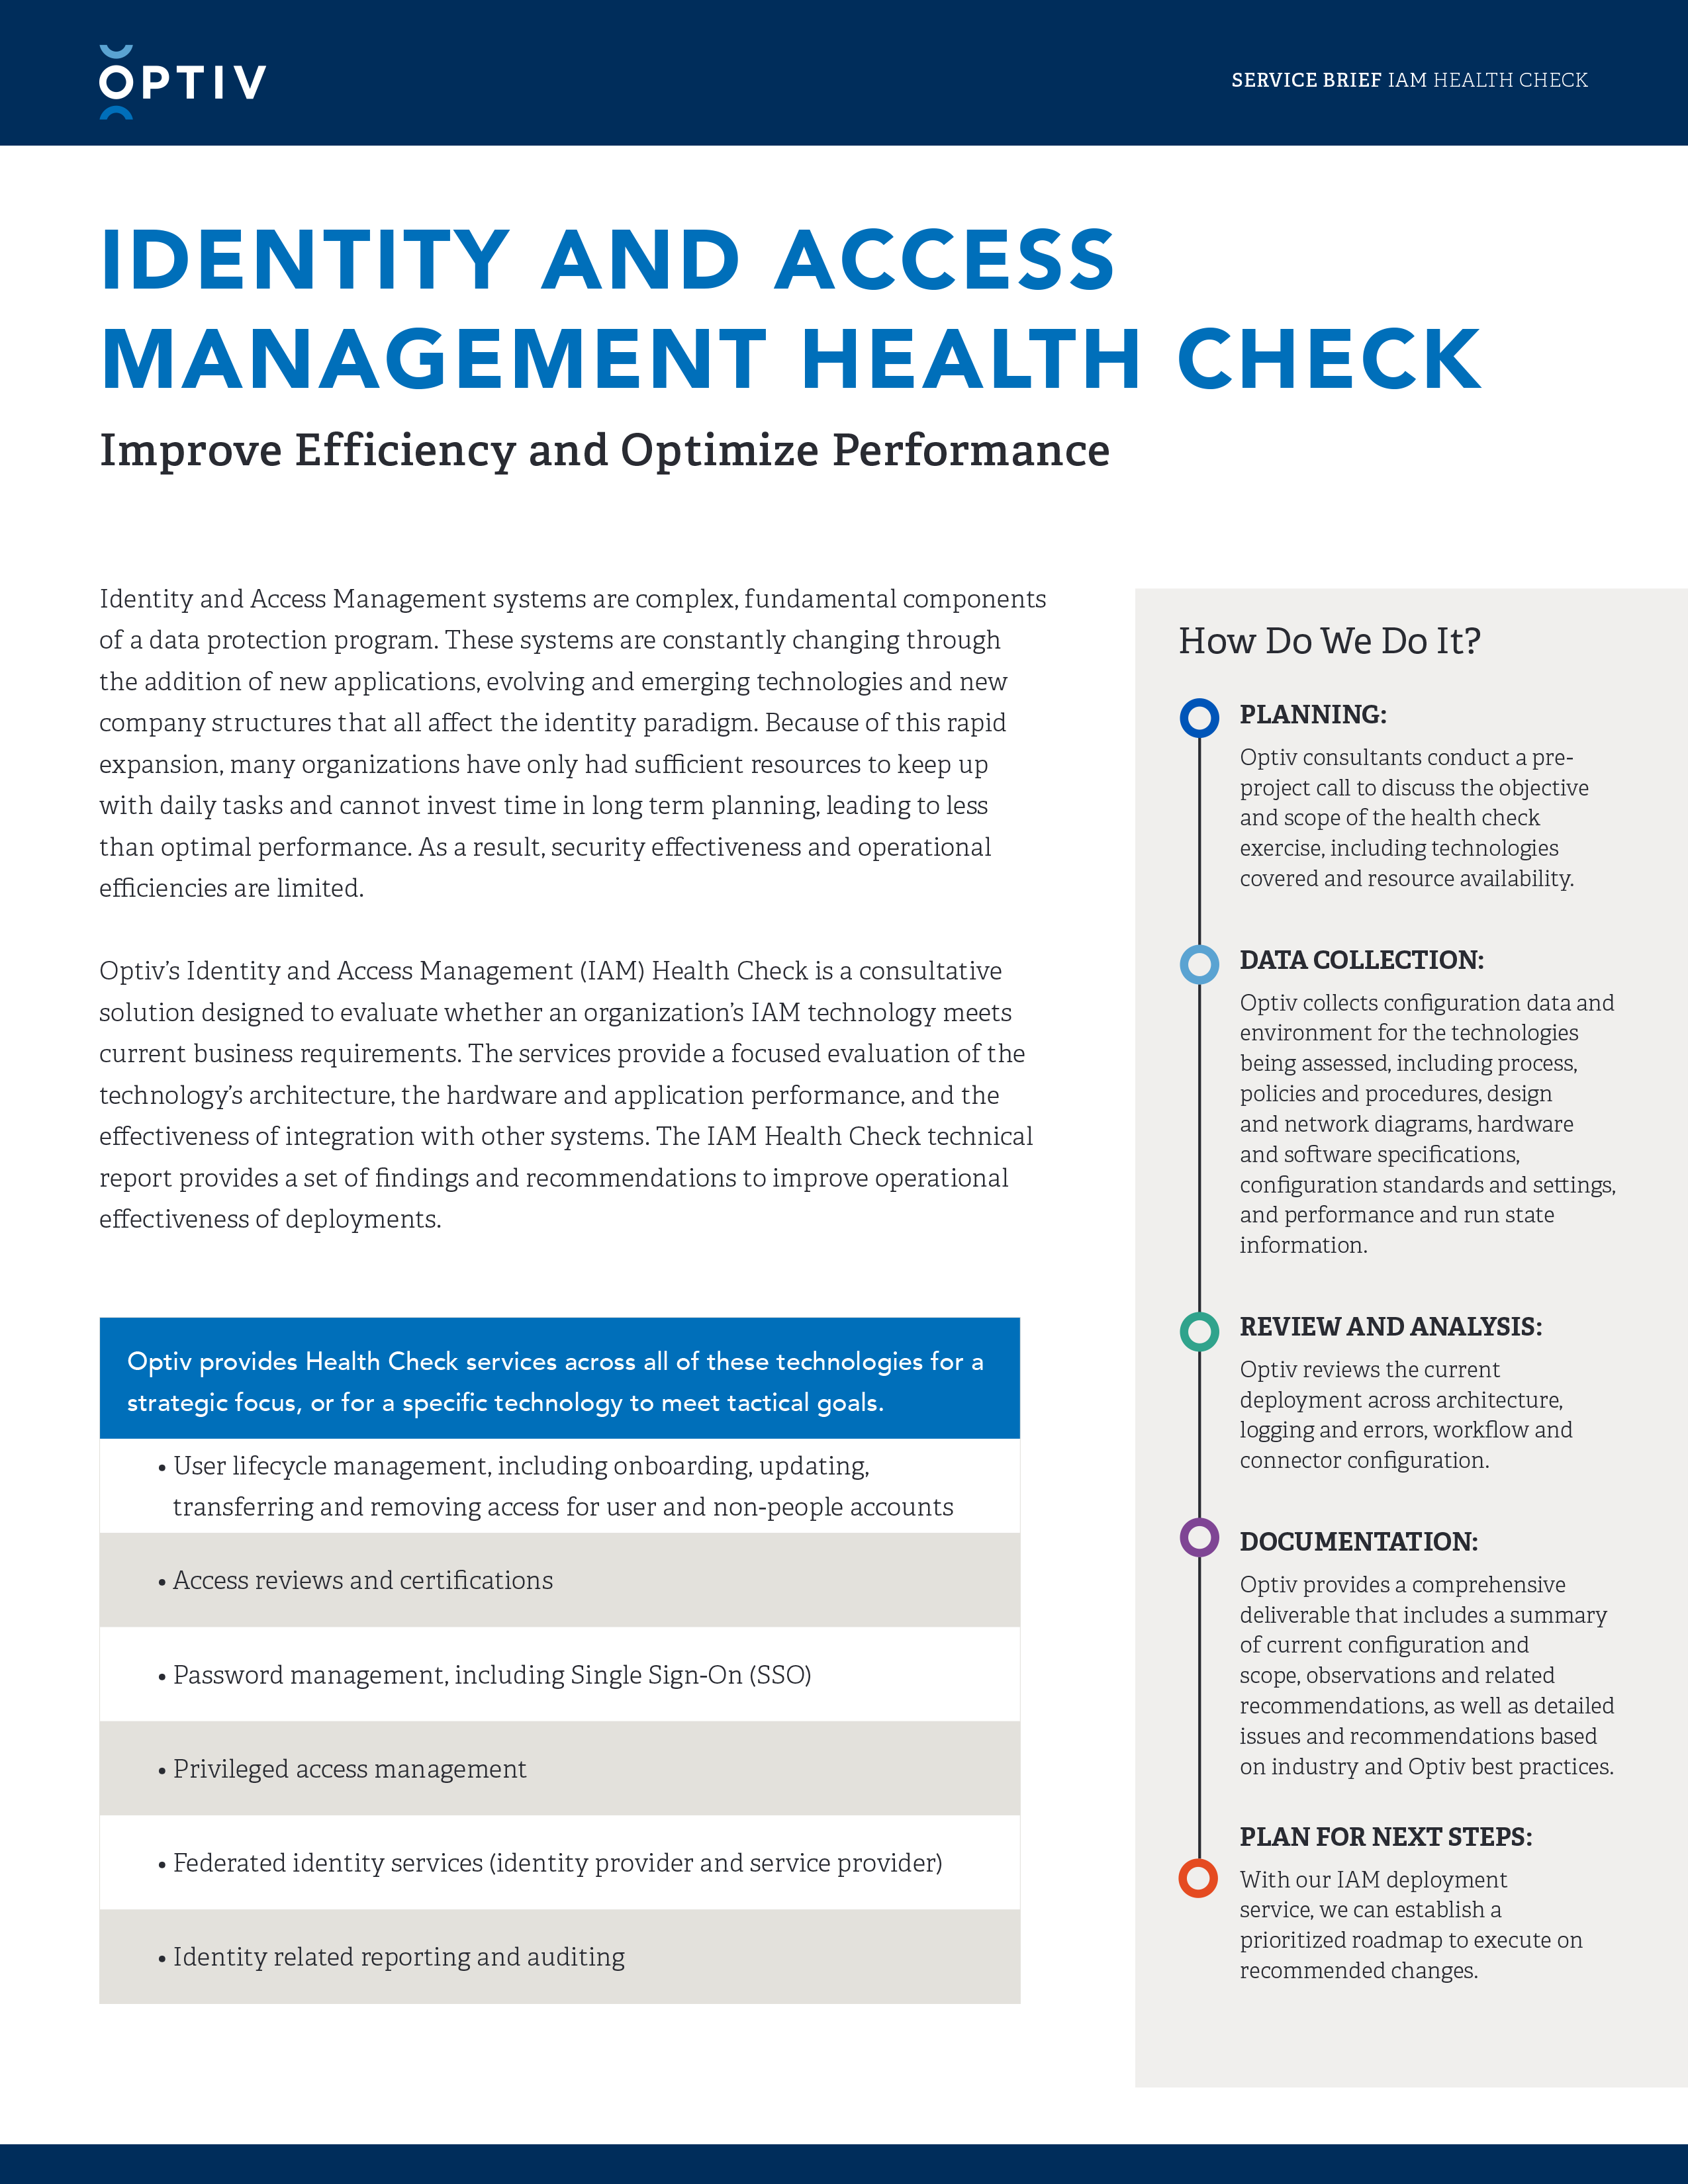 Identity and Access Management Health Check